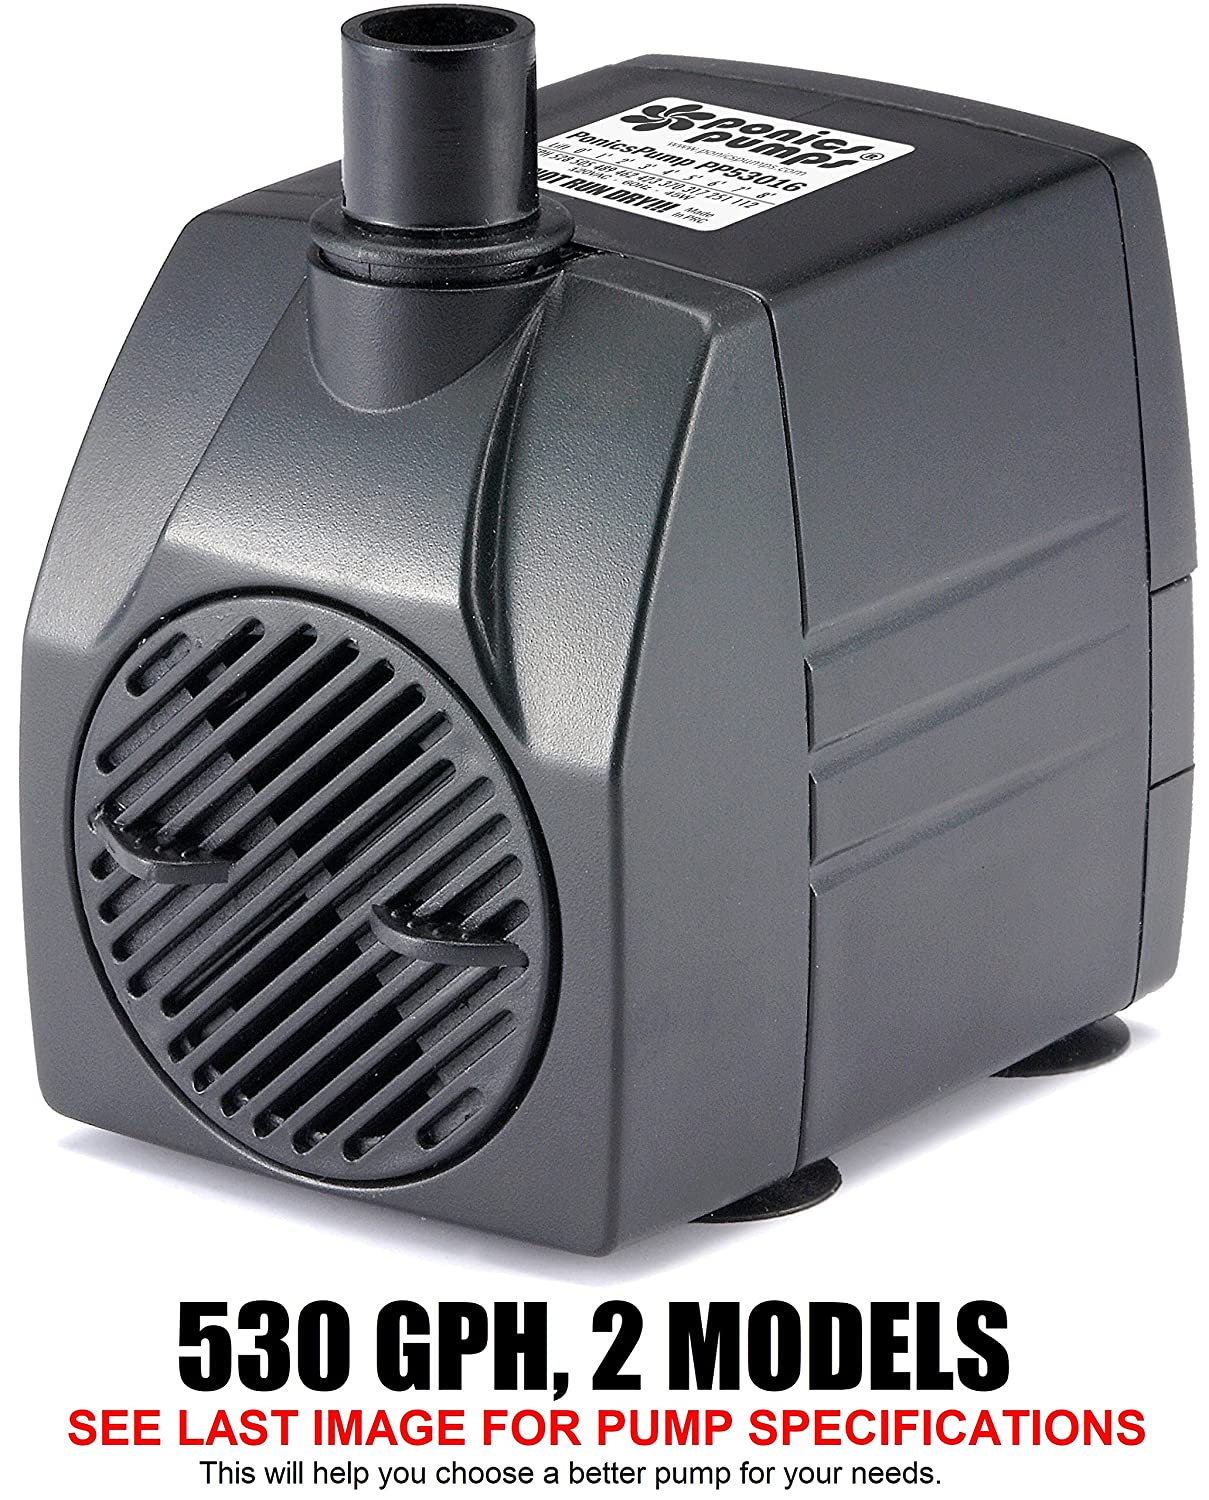 PonicsPumps Submersible Pump with for Hydroponics, Aquaponics, Fountains, Ponds, Statuary, Aquariums & more. Comes with 1 year limited warranty. (530 GPH : 16' Cord)